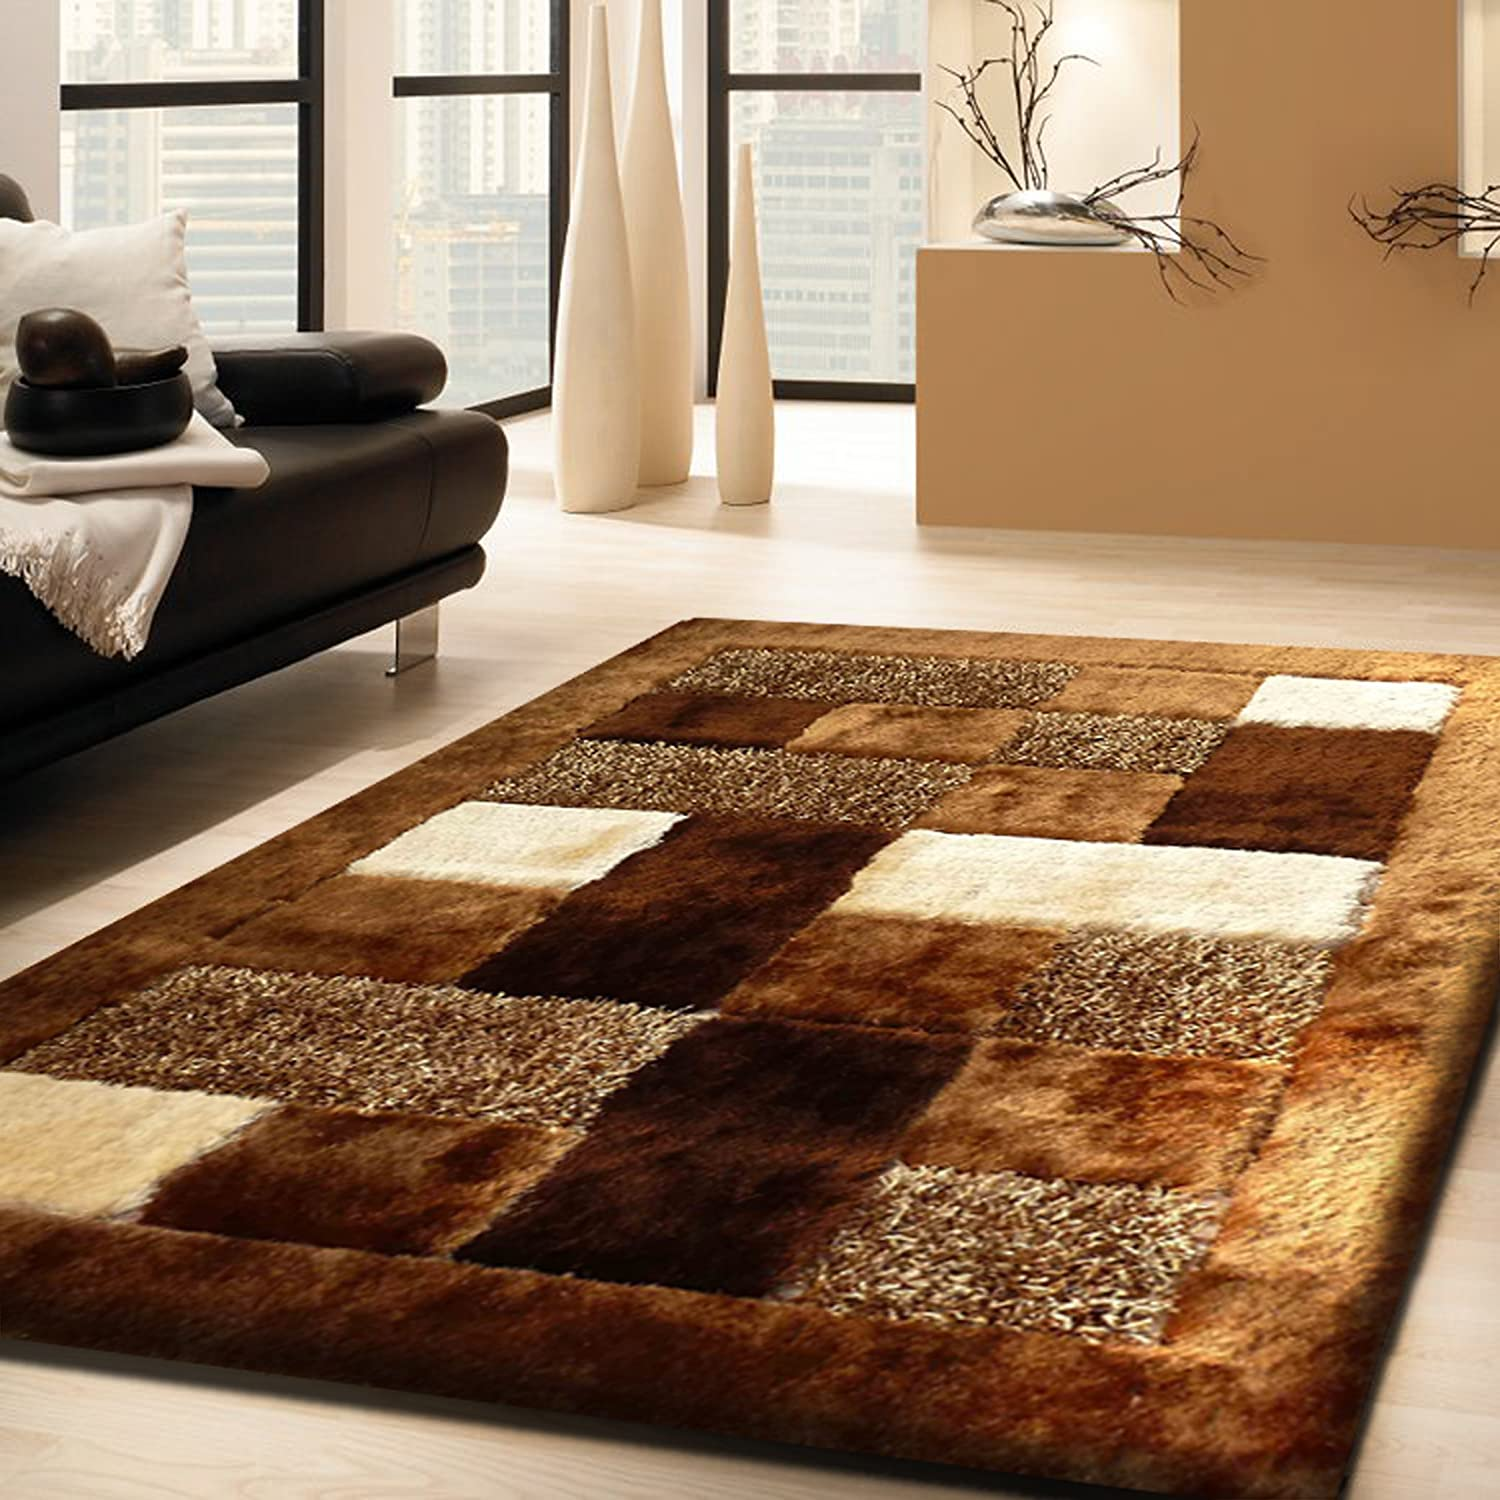 Amazon.com: Admirable Shaggy Viscose #30 Brown Living Room Area Rug ,~5 Ft.  X 7 Ft. (152 X 214) FREE RUG PAD INCLUDED: Kitchen U0026 Dining